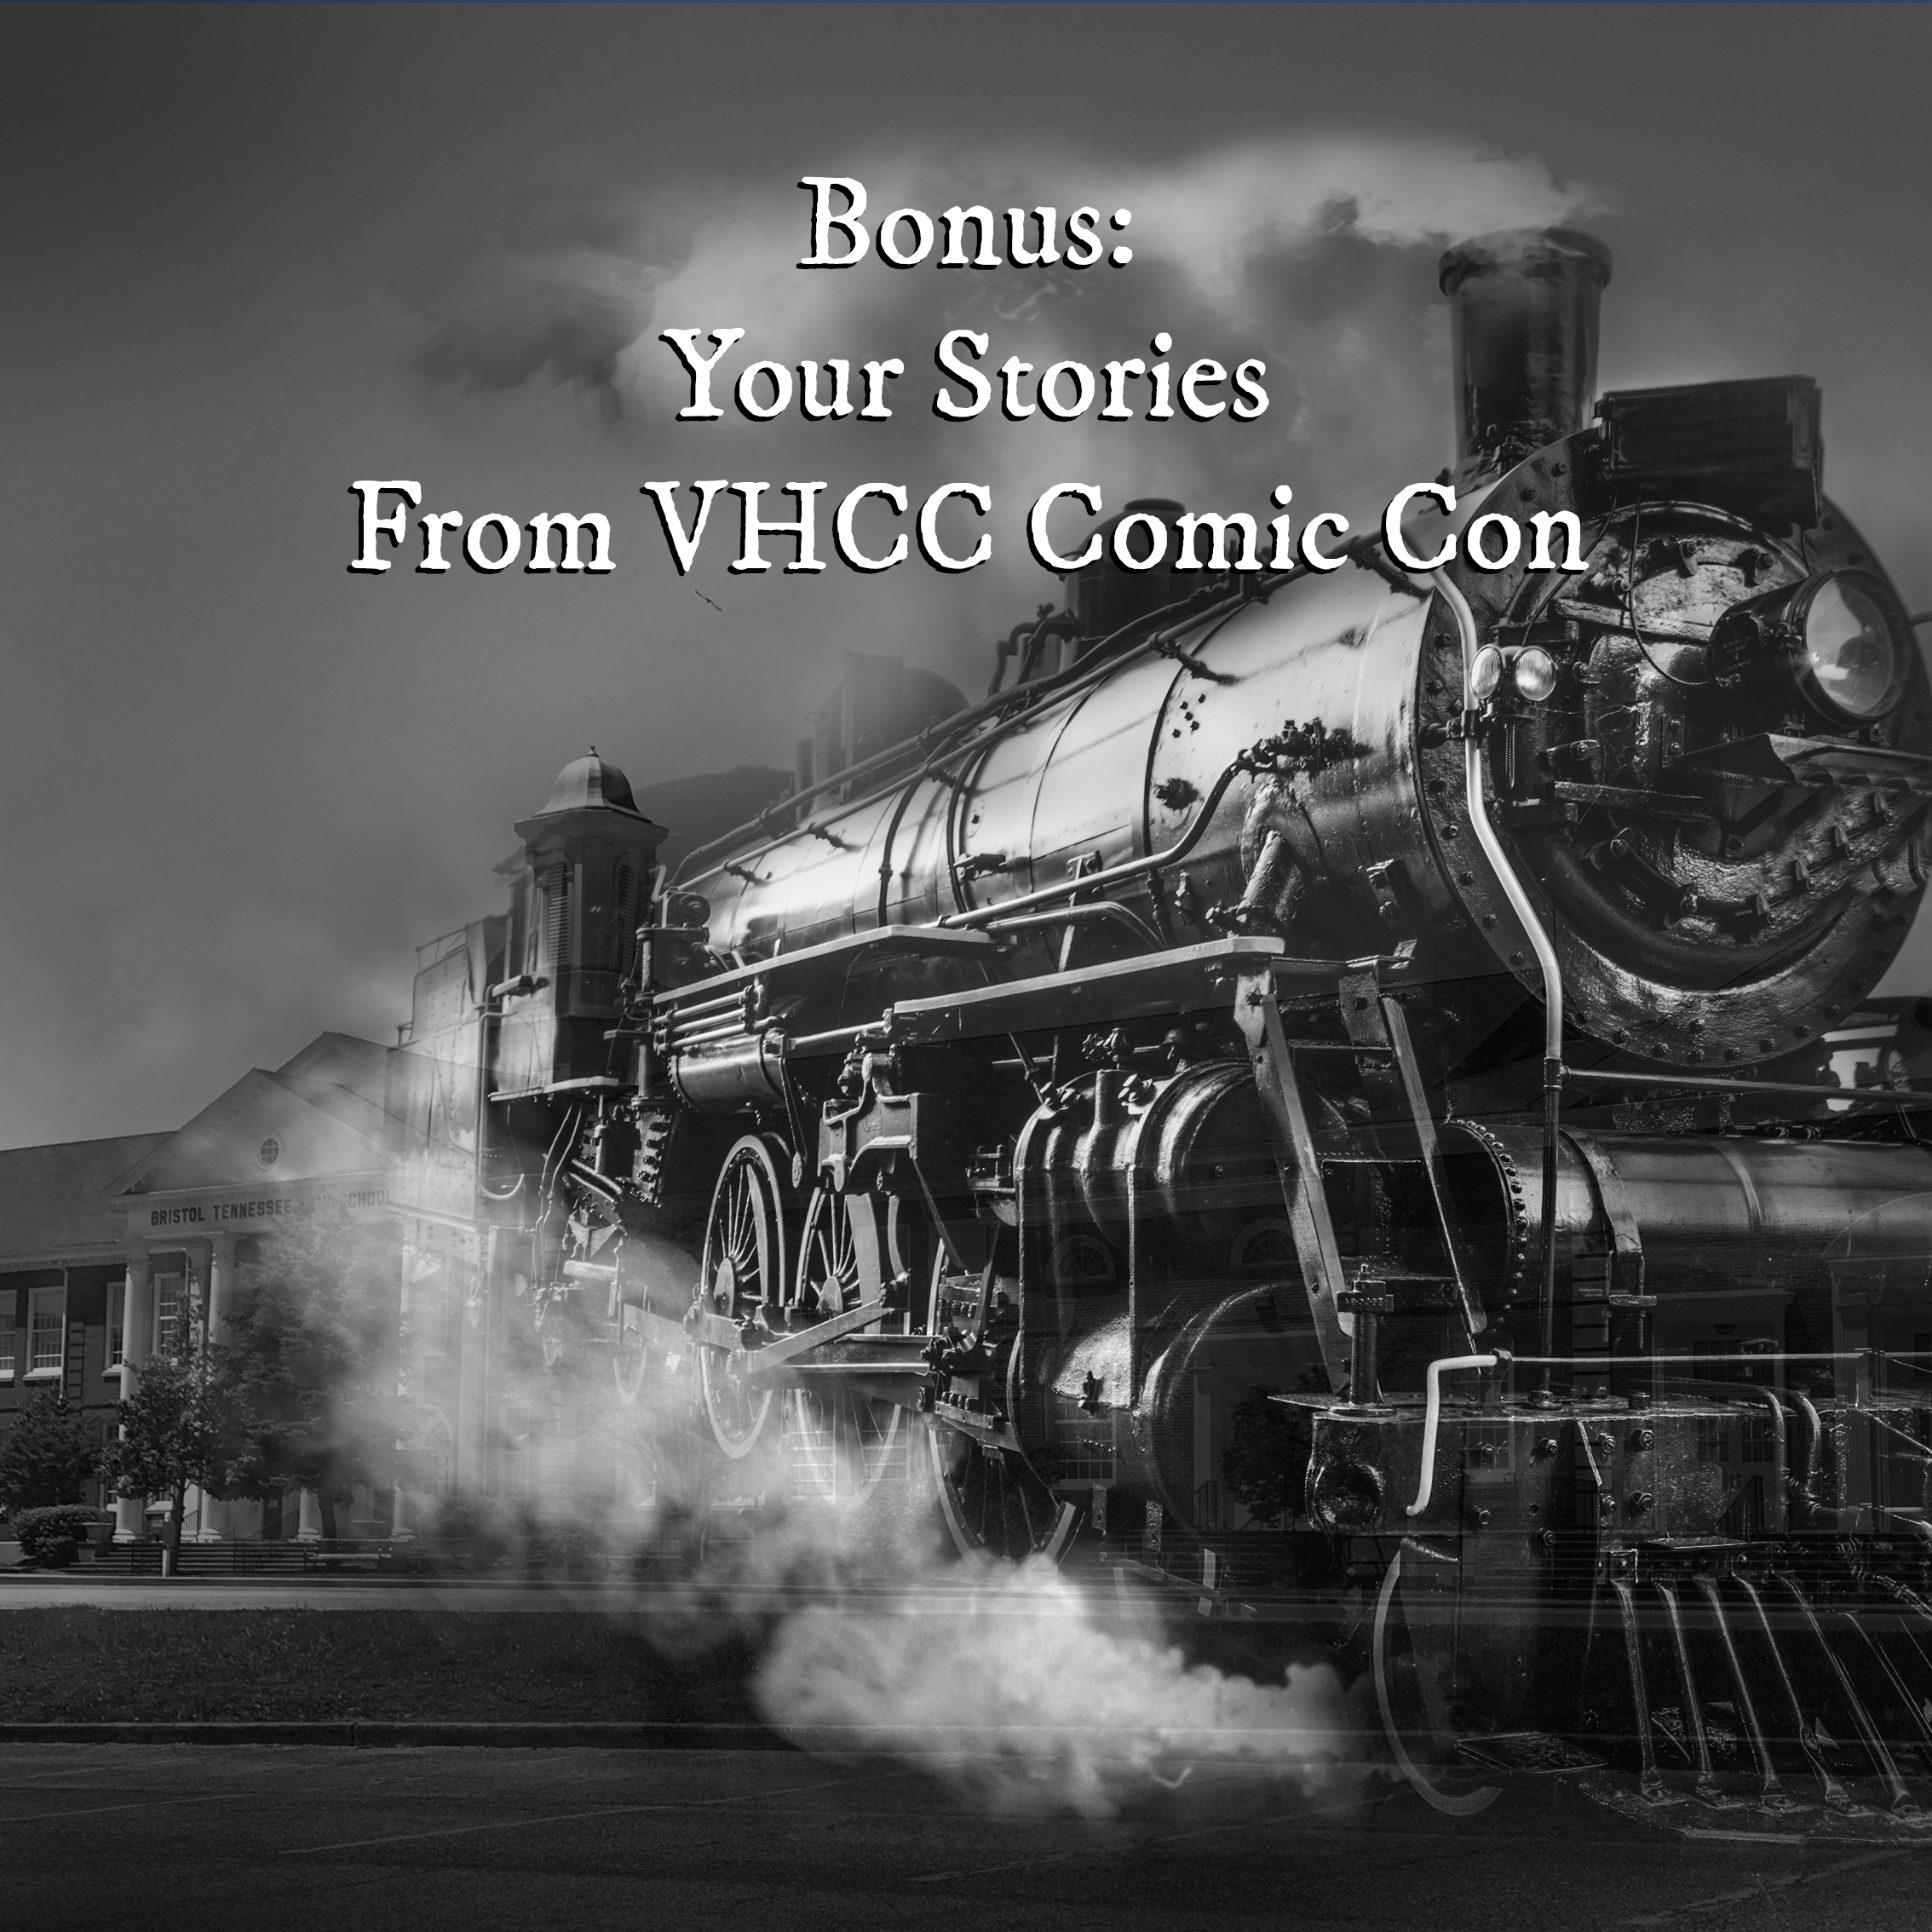 Bonus: Your Stories from VHCC Comic Con Art